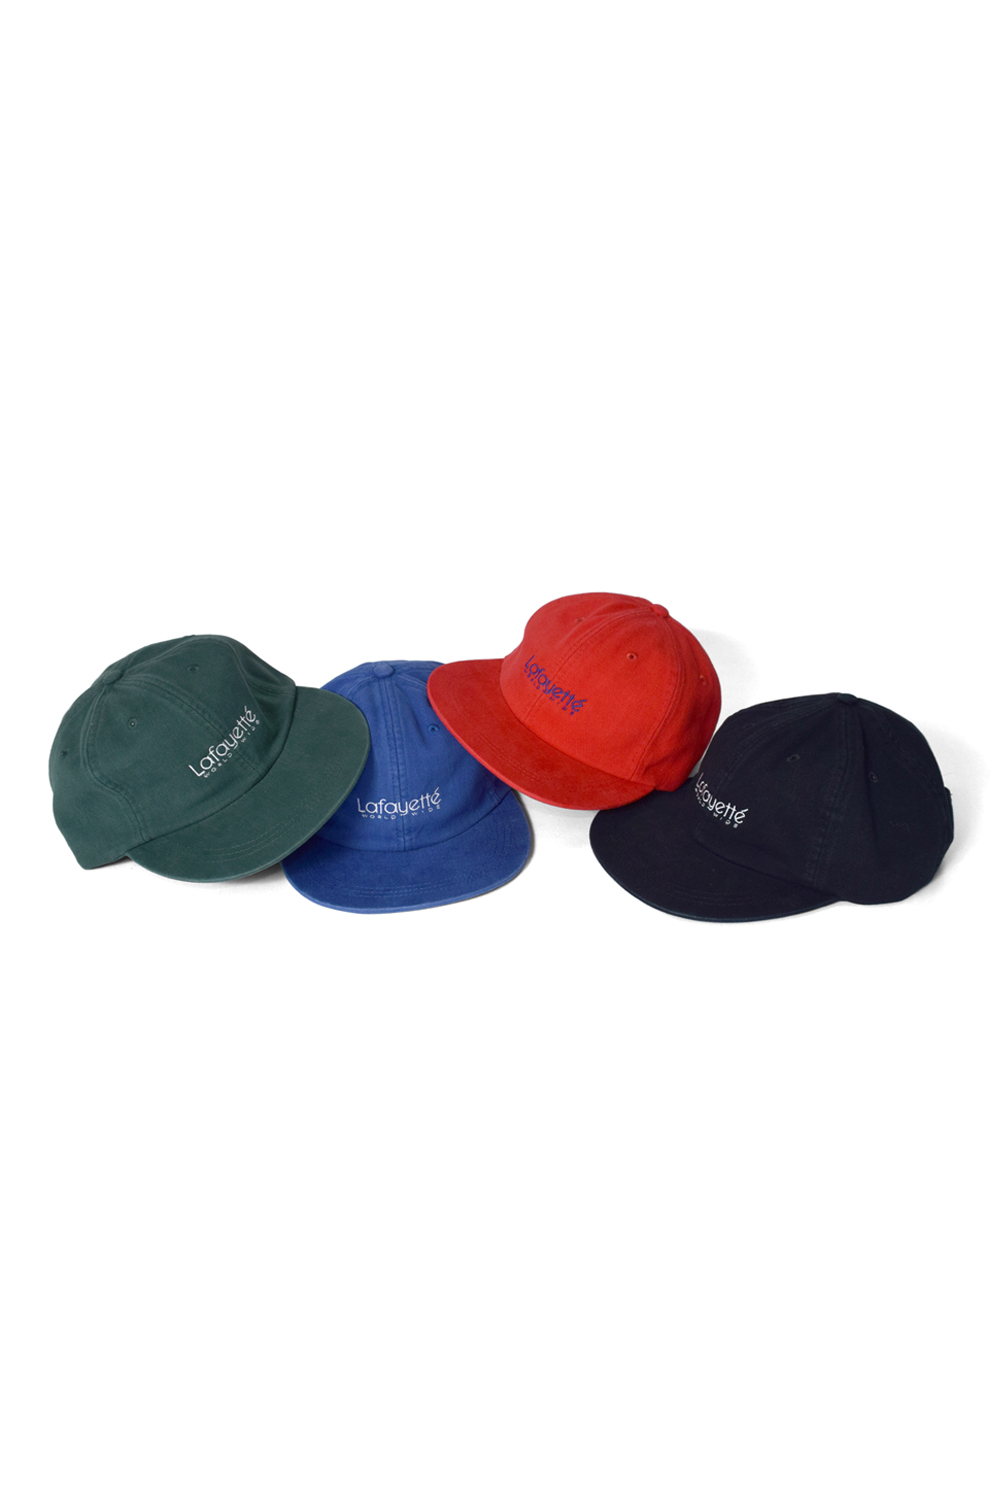 画像1: 【LAFAYETTE】LOGO BRUSHED COTTON 6 PANEL CAP